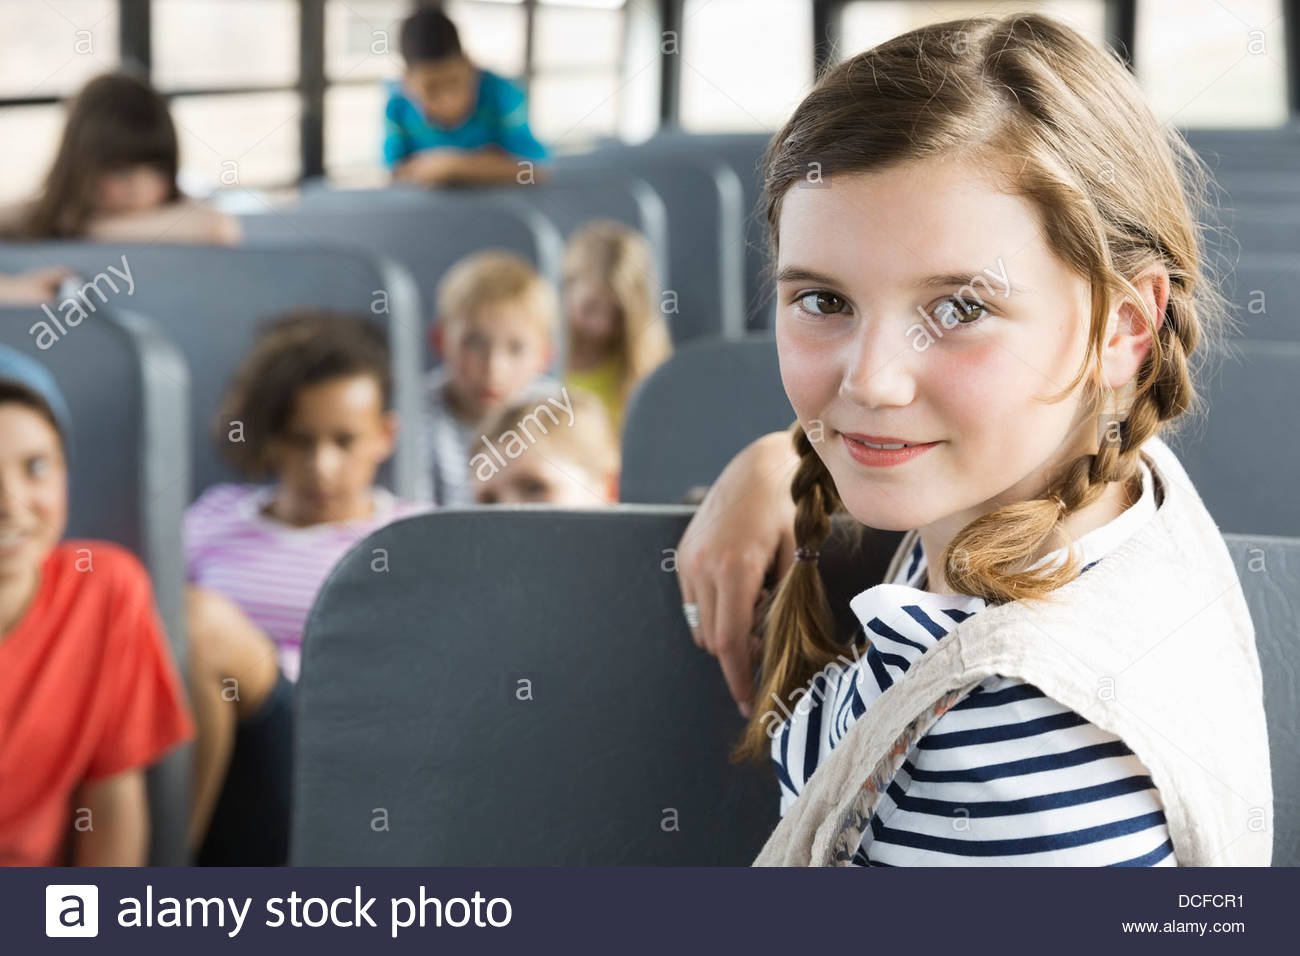 Portrait of cute girl inside school bus Photo Stock